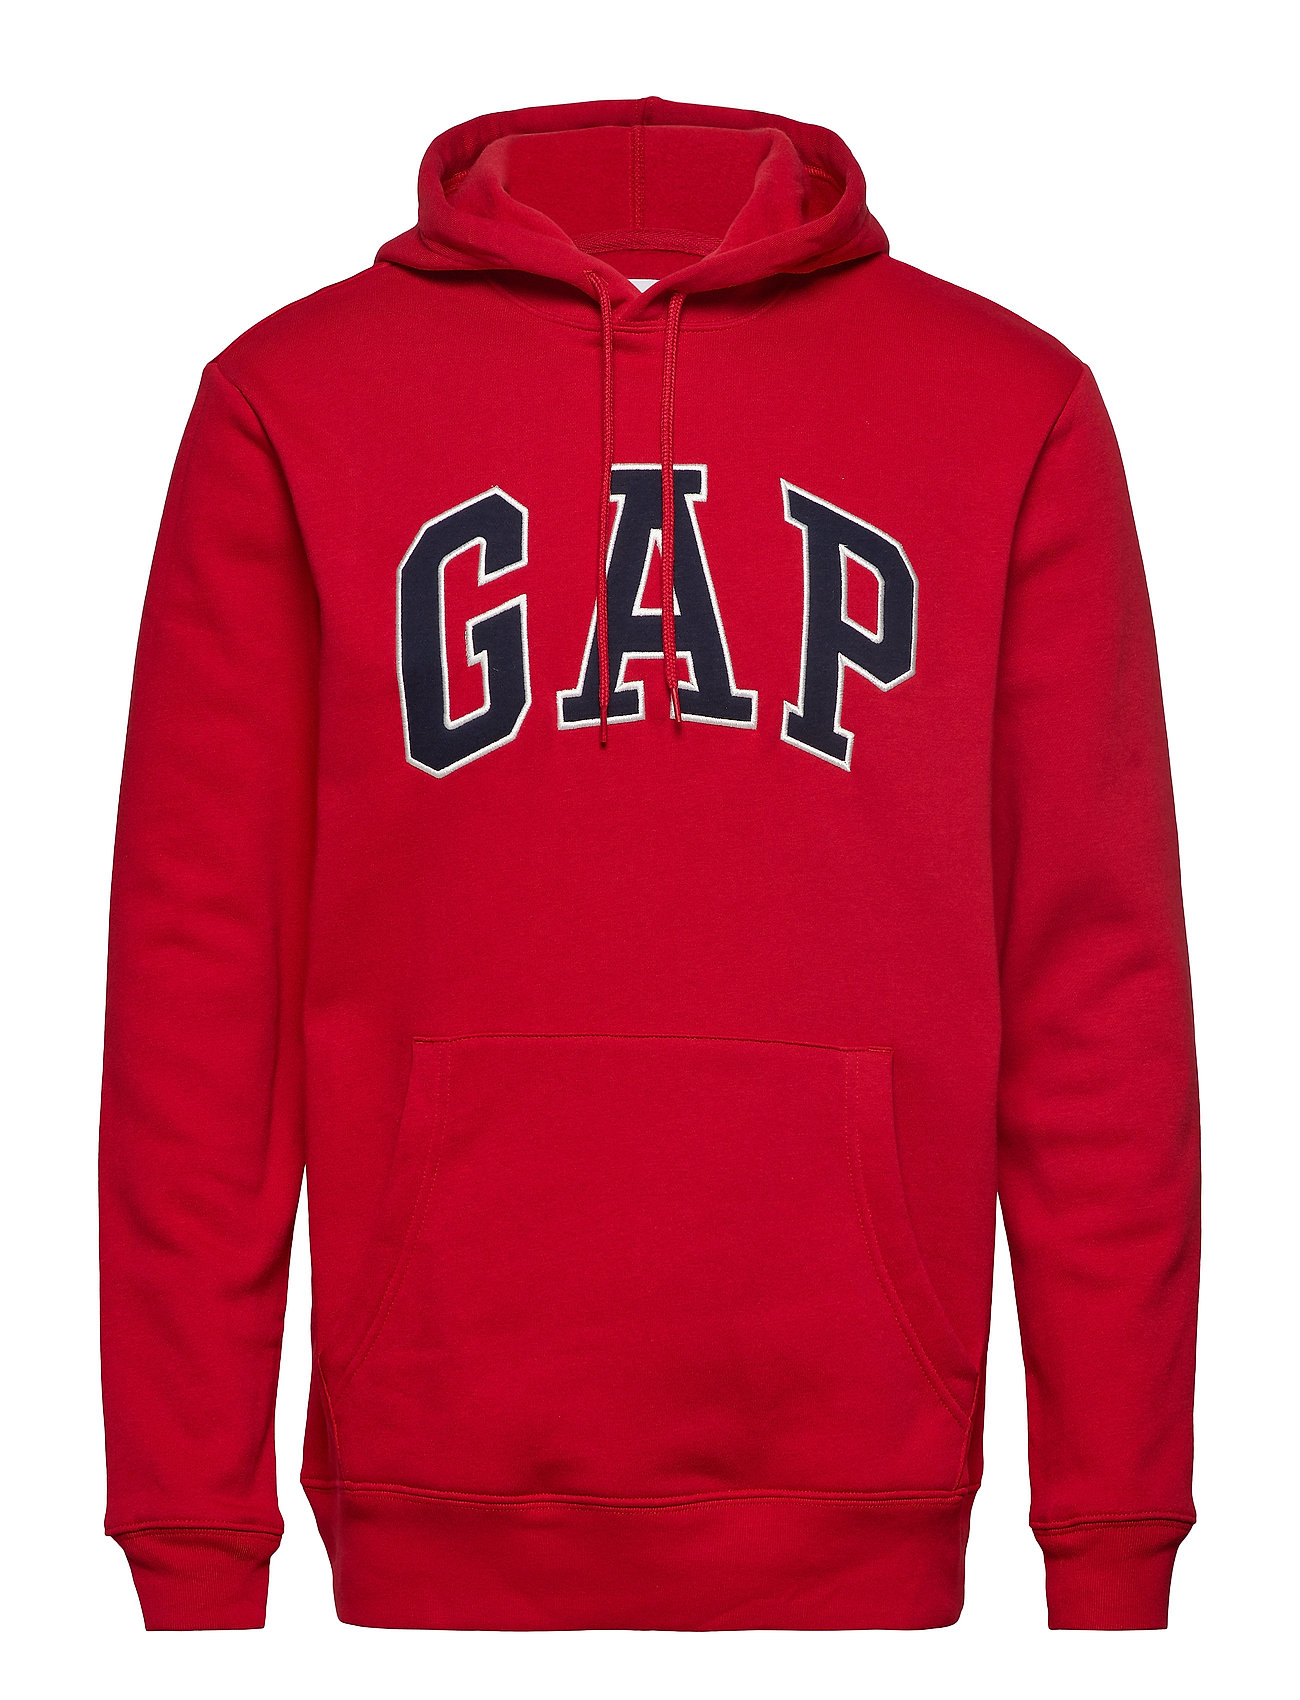 Fleece Archcrimson Red Red Fleece Archcrimson Fleece Gap Gap Yf6yb7g